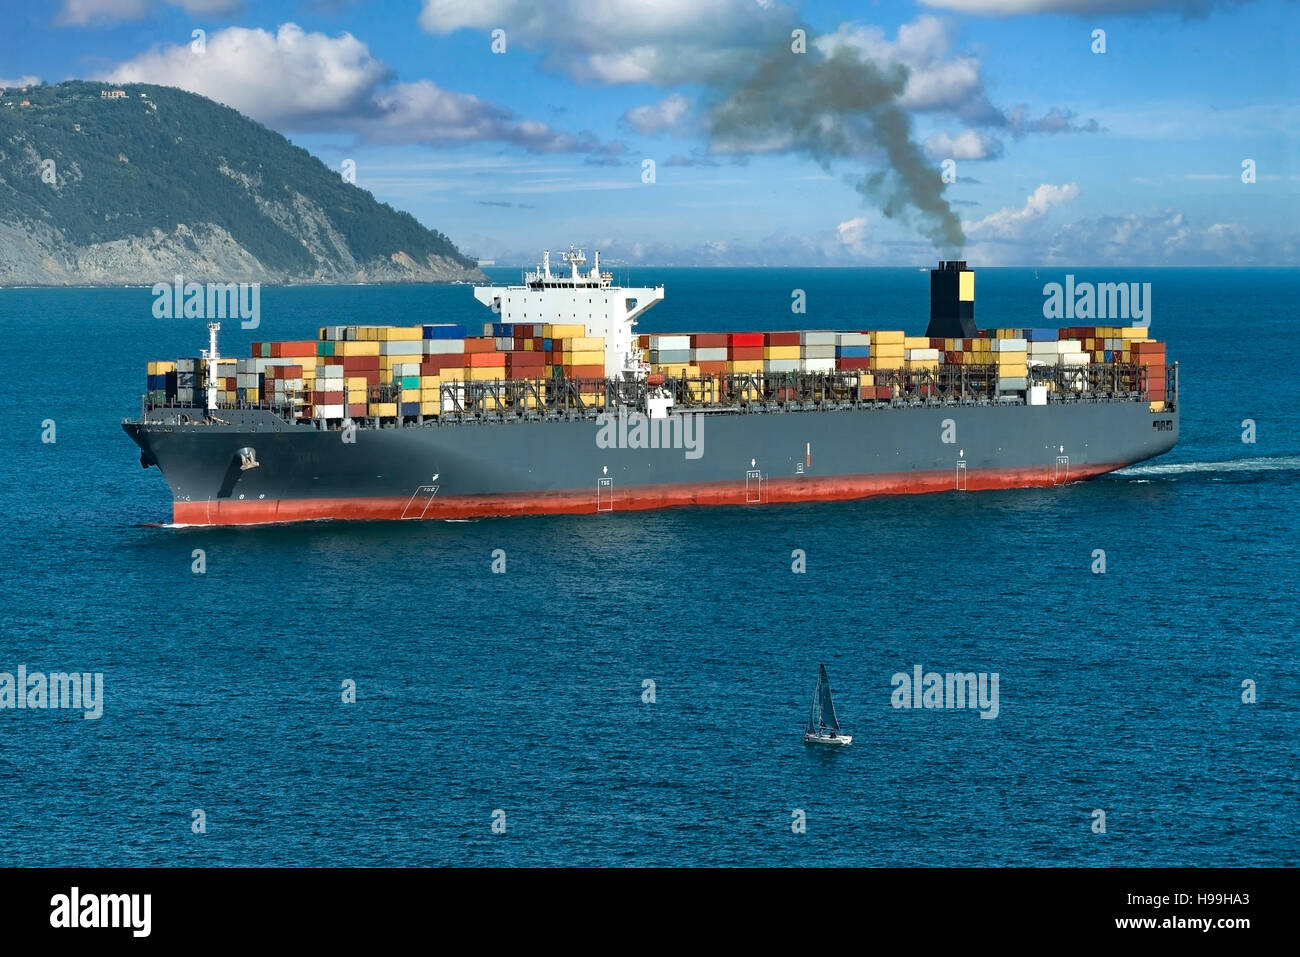 Aerial view of a Cargo ship - Stock Image